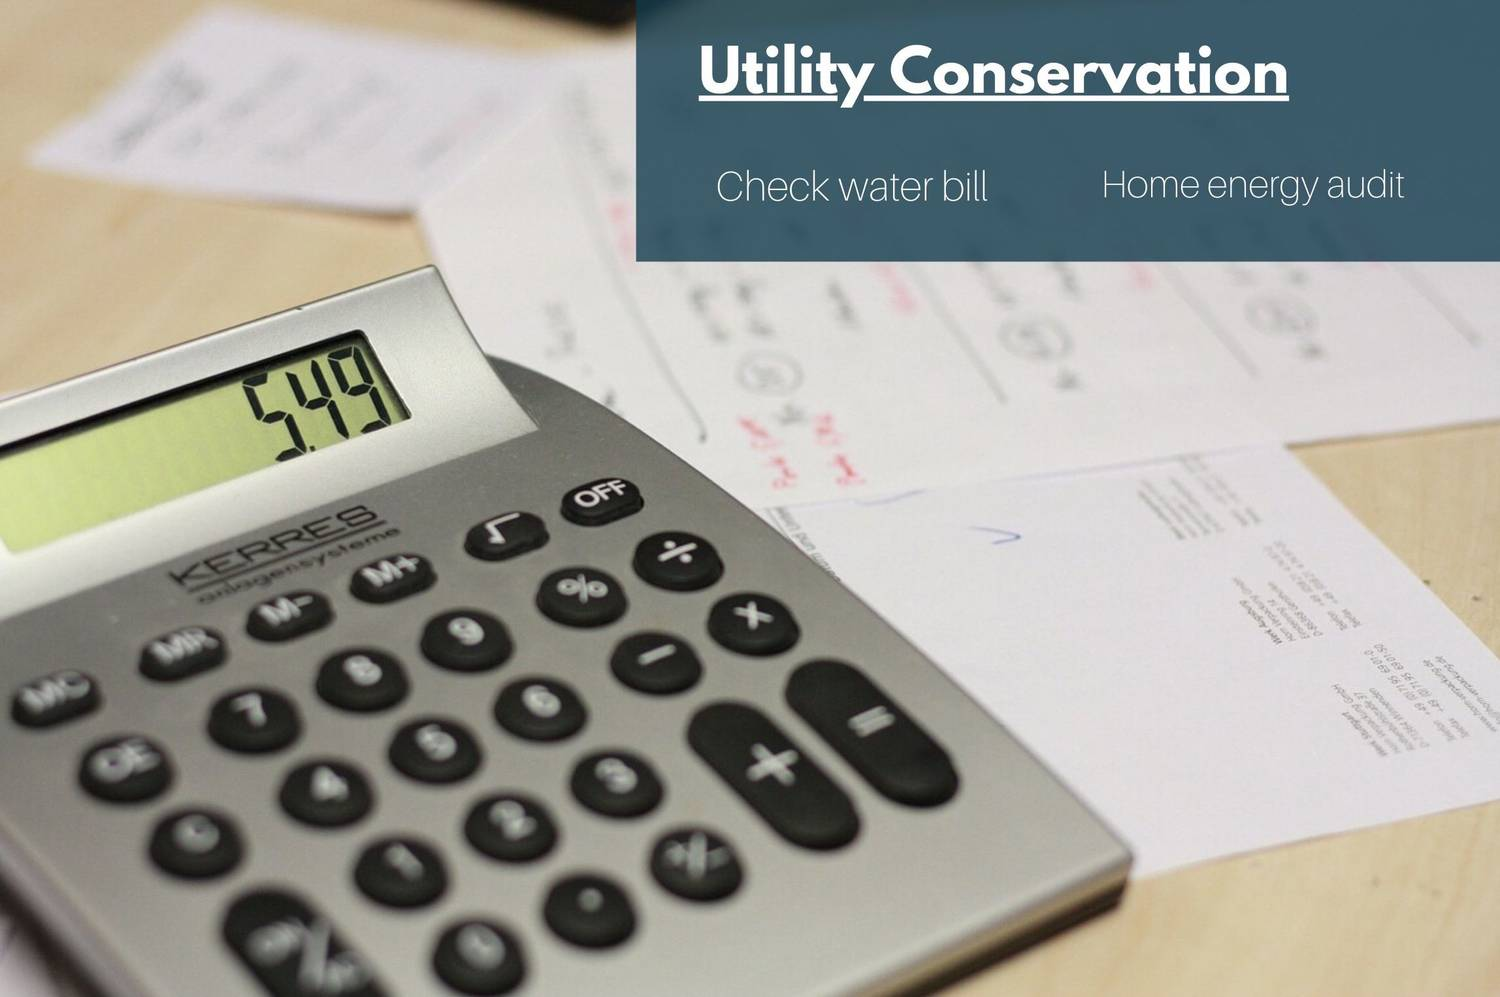 BONUS TIPS: Utility Conservation